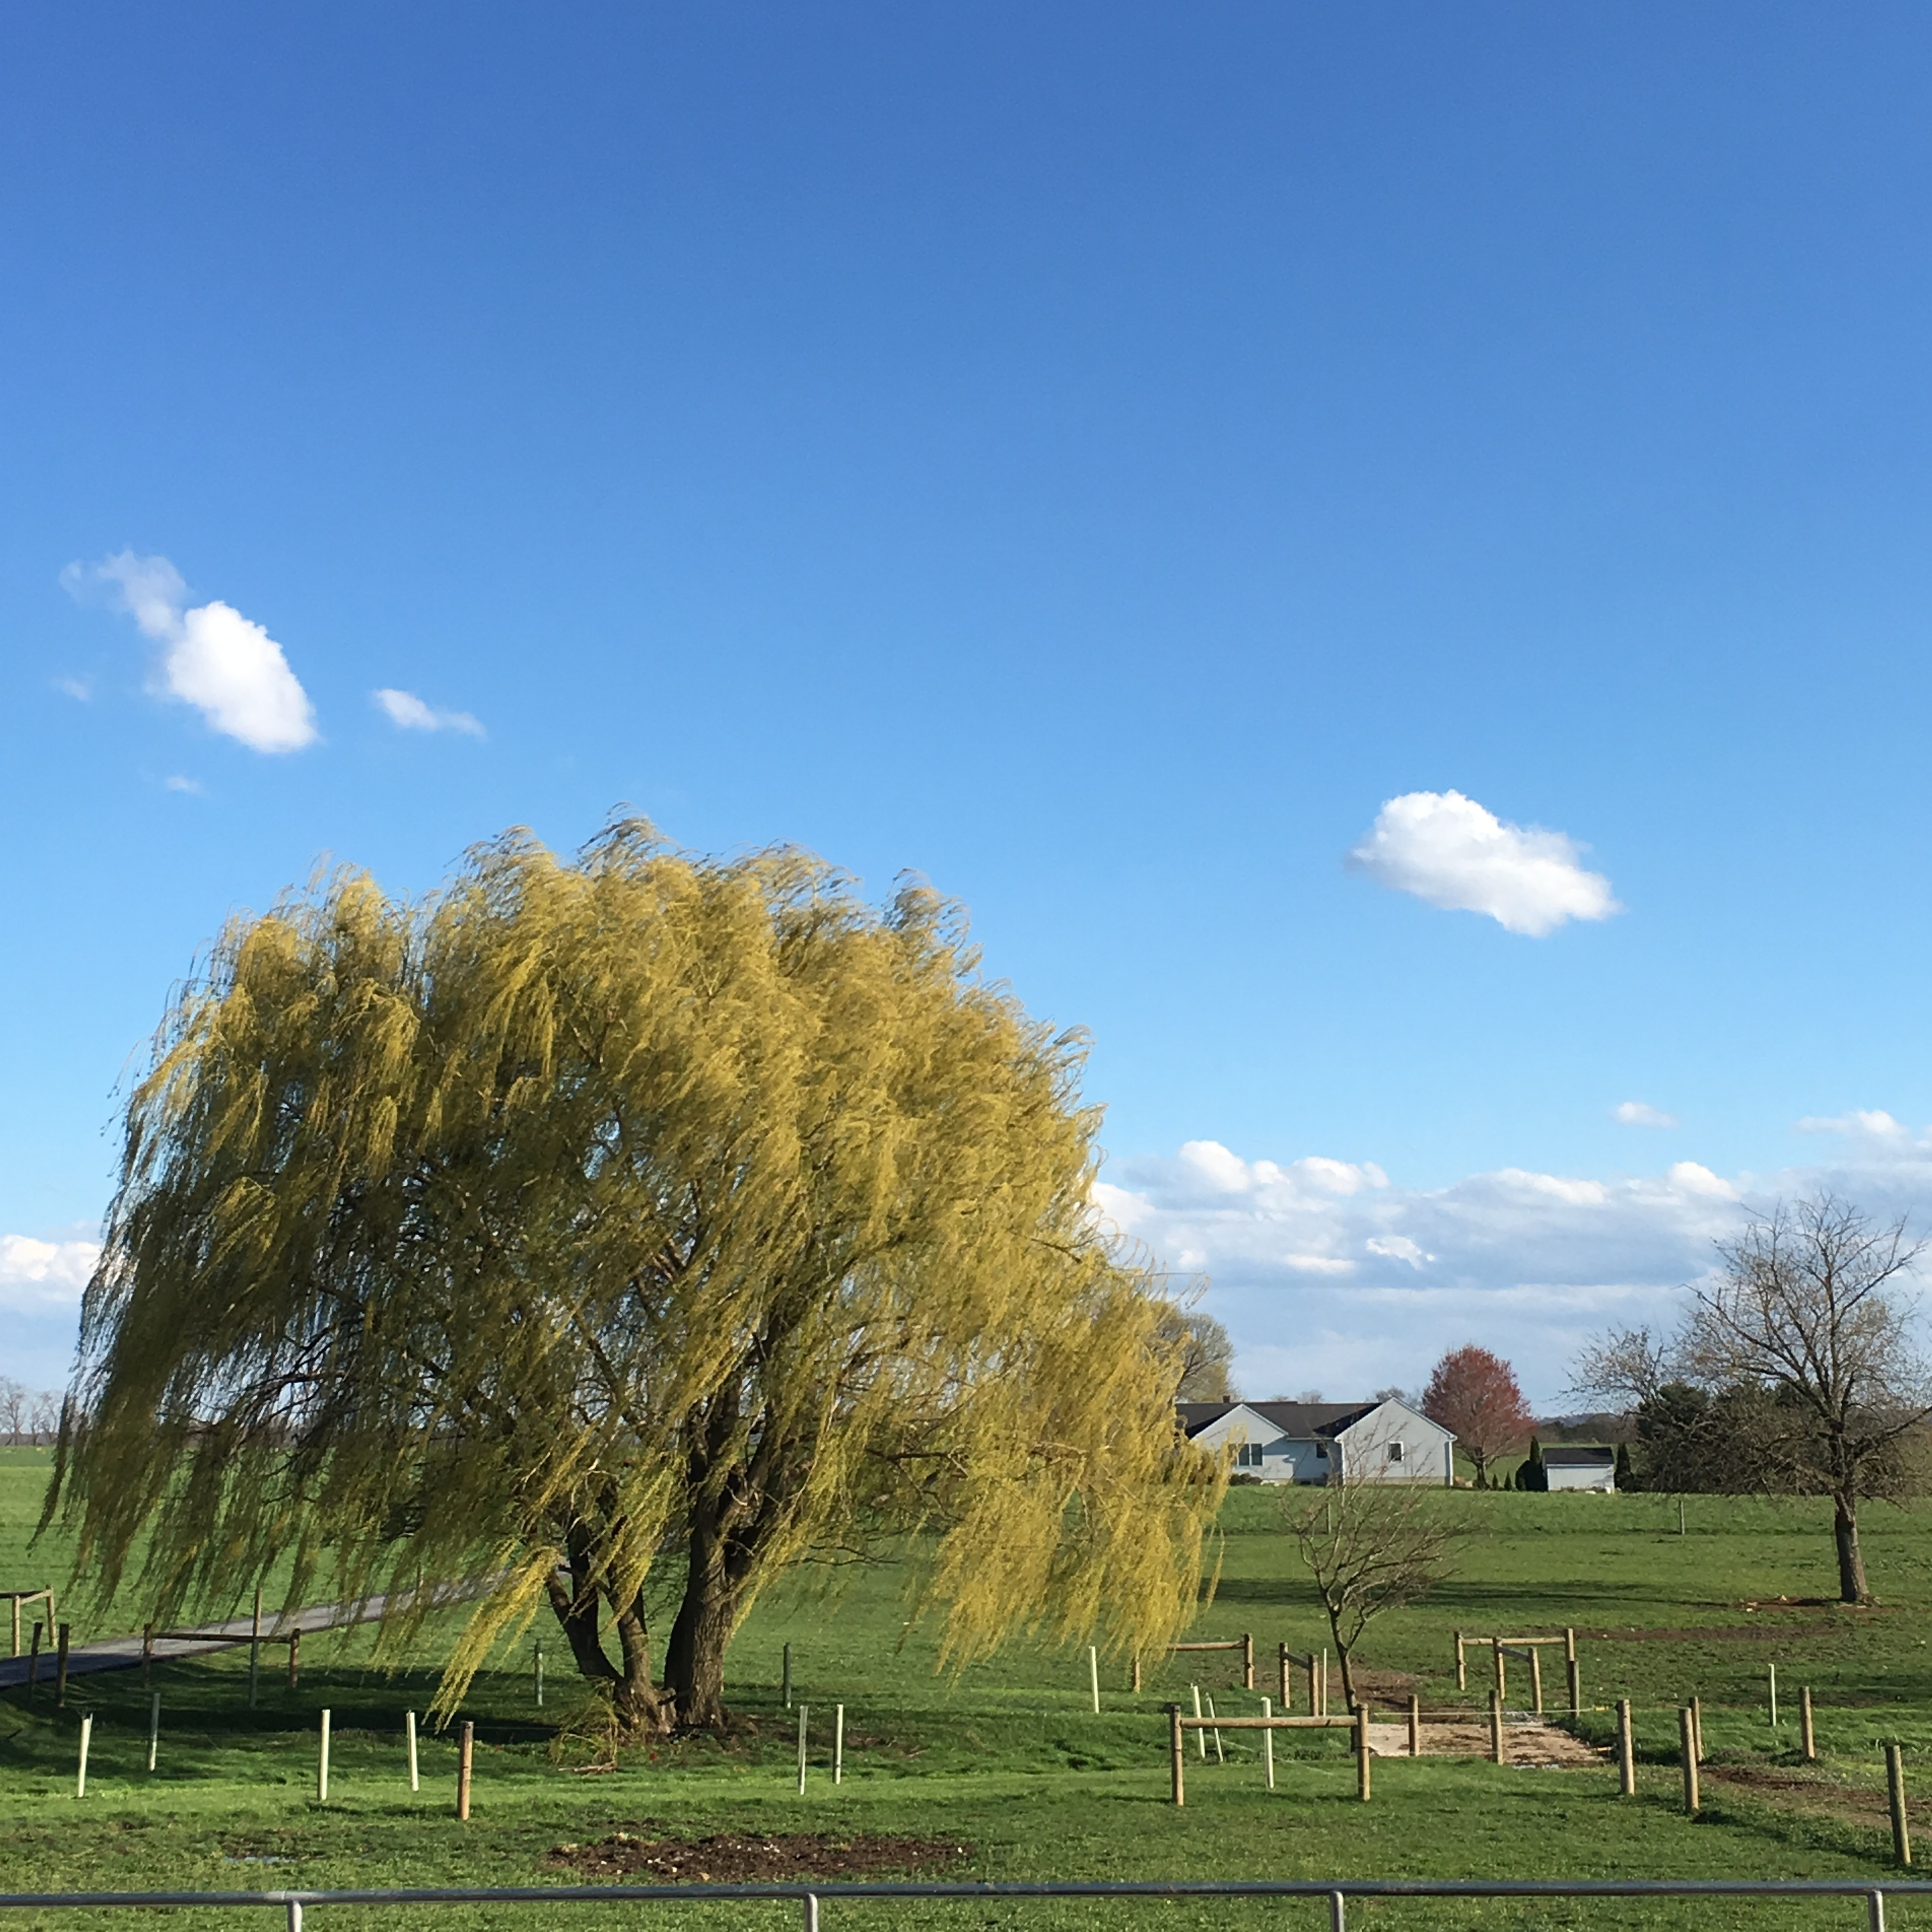 Amish country landscape with magnificent tree in Pennsylvania